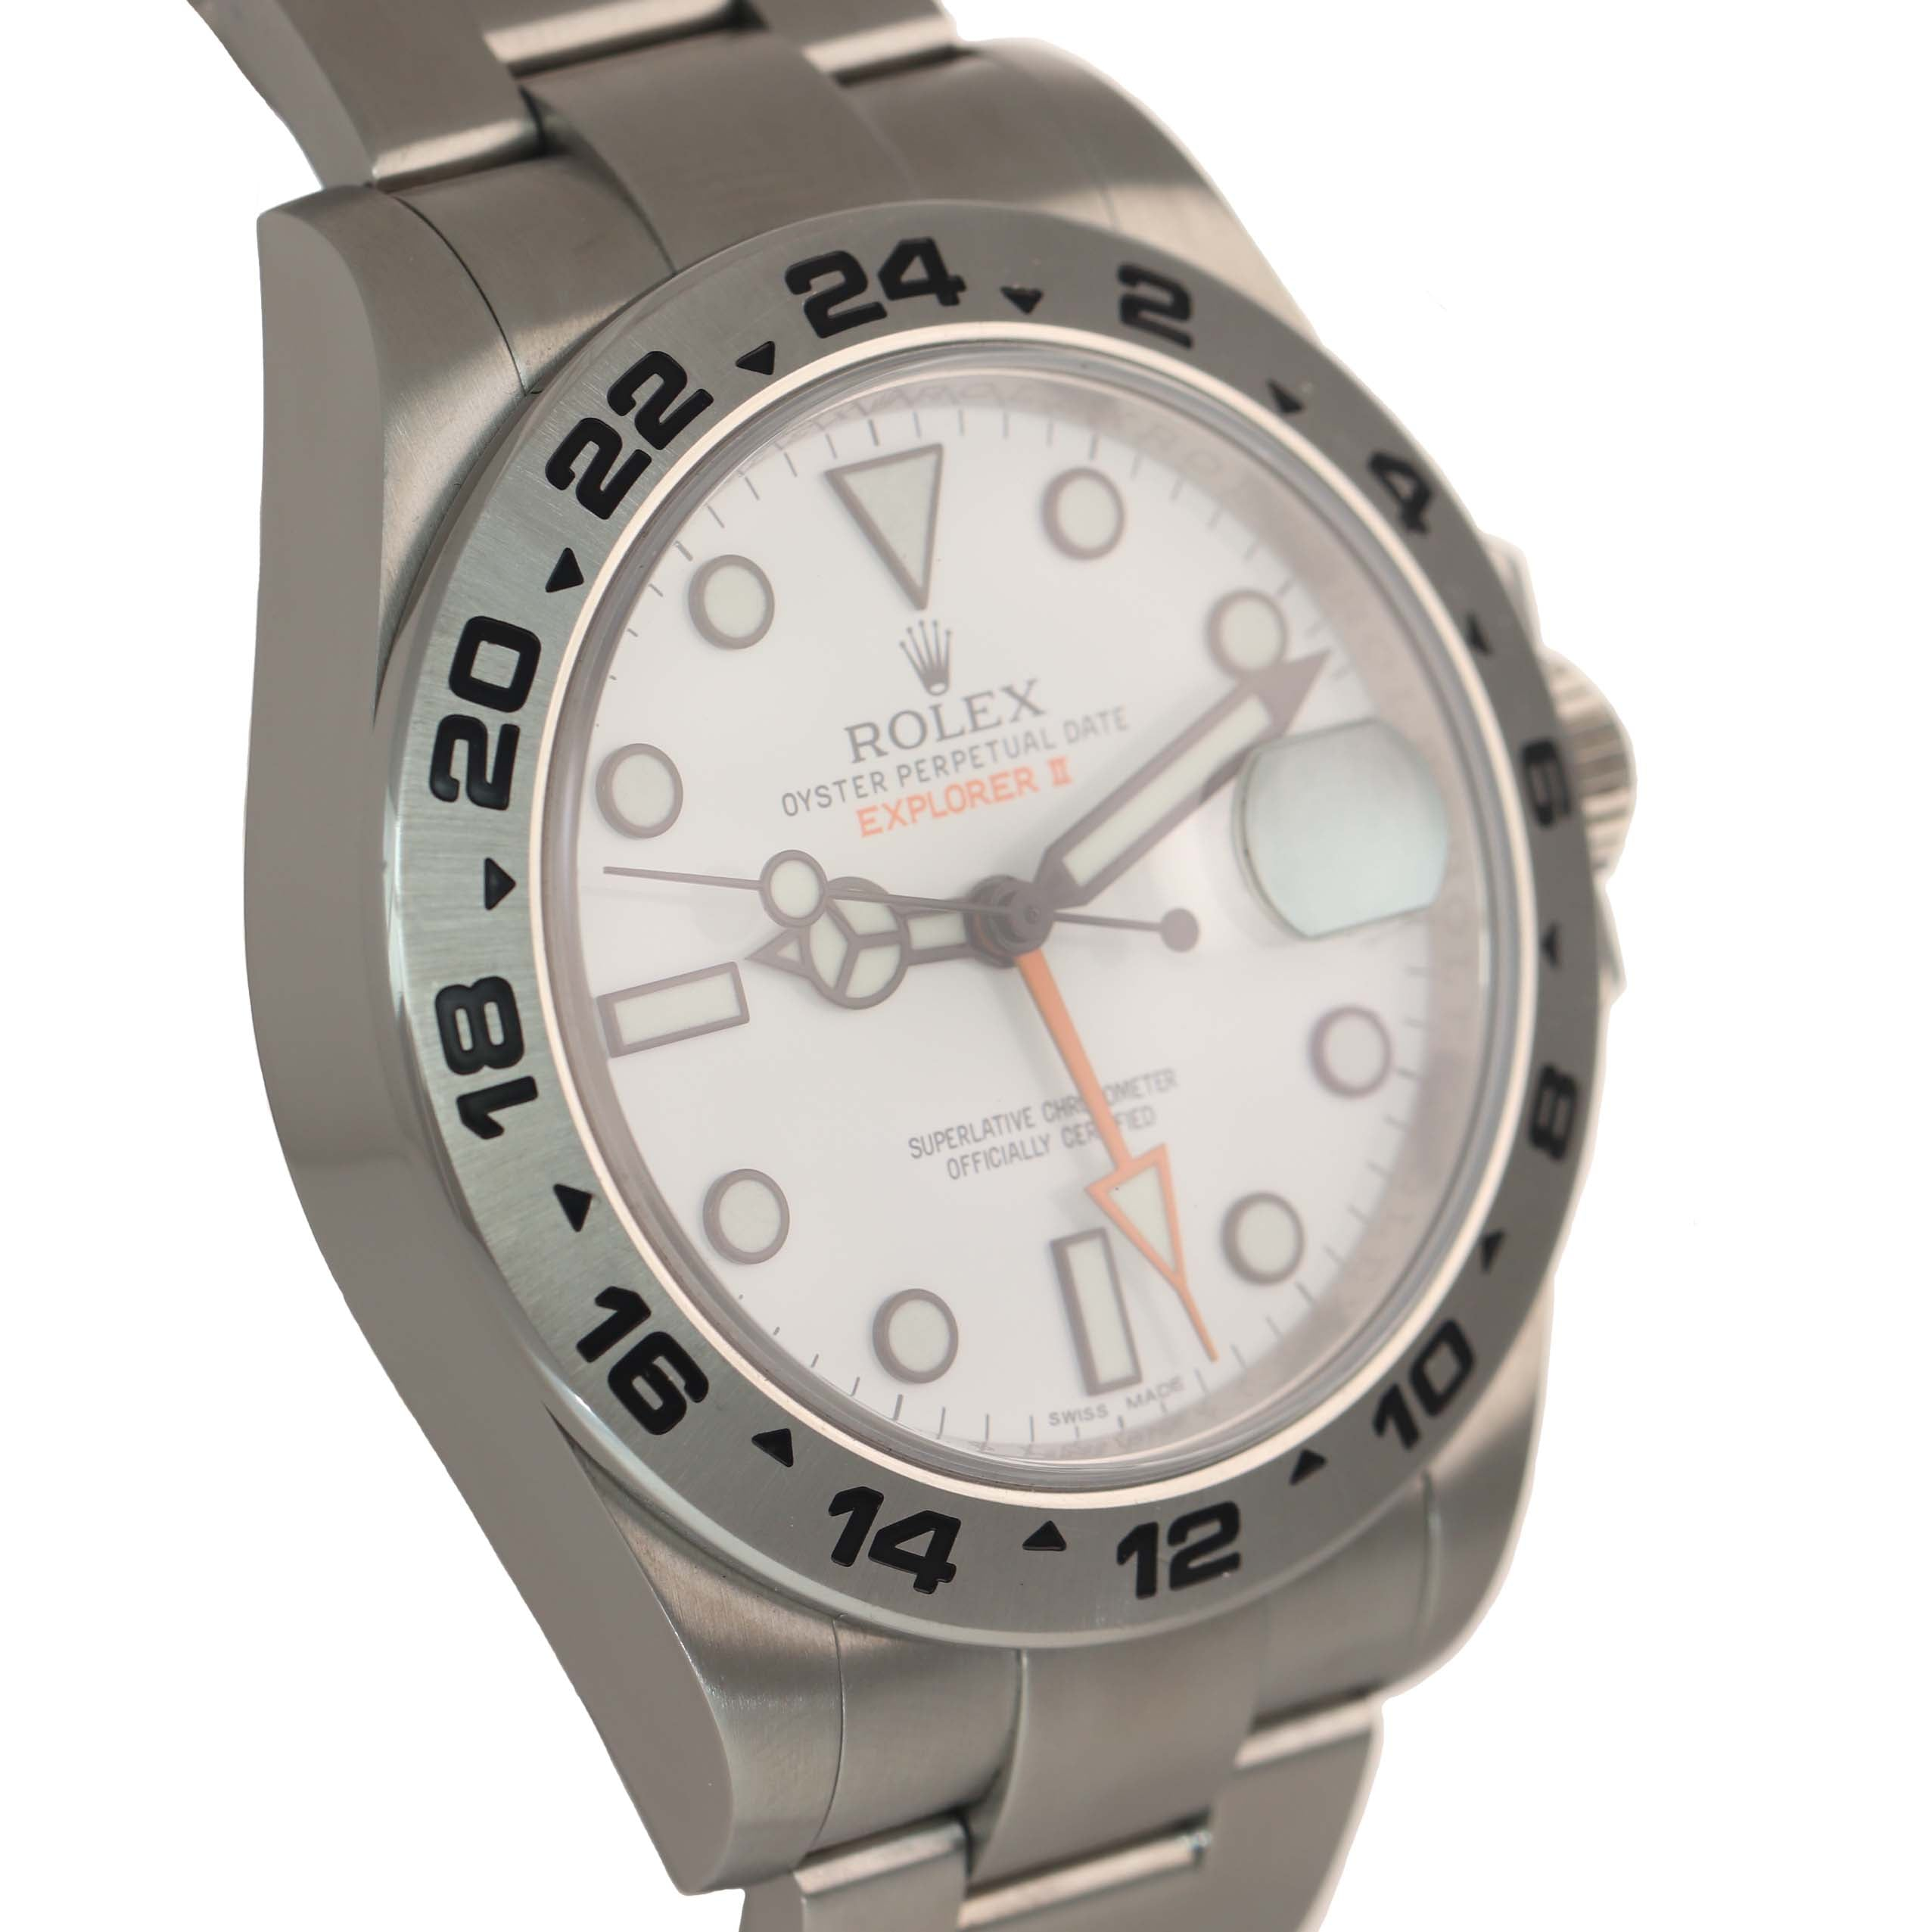 PAPERS 2015 Rolex Explorer II 42mm 216570 White Polar Steel GMT Date Watch